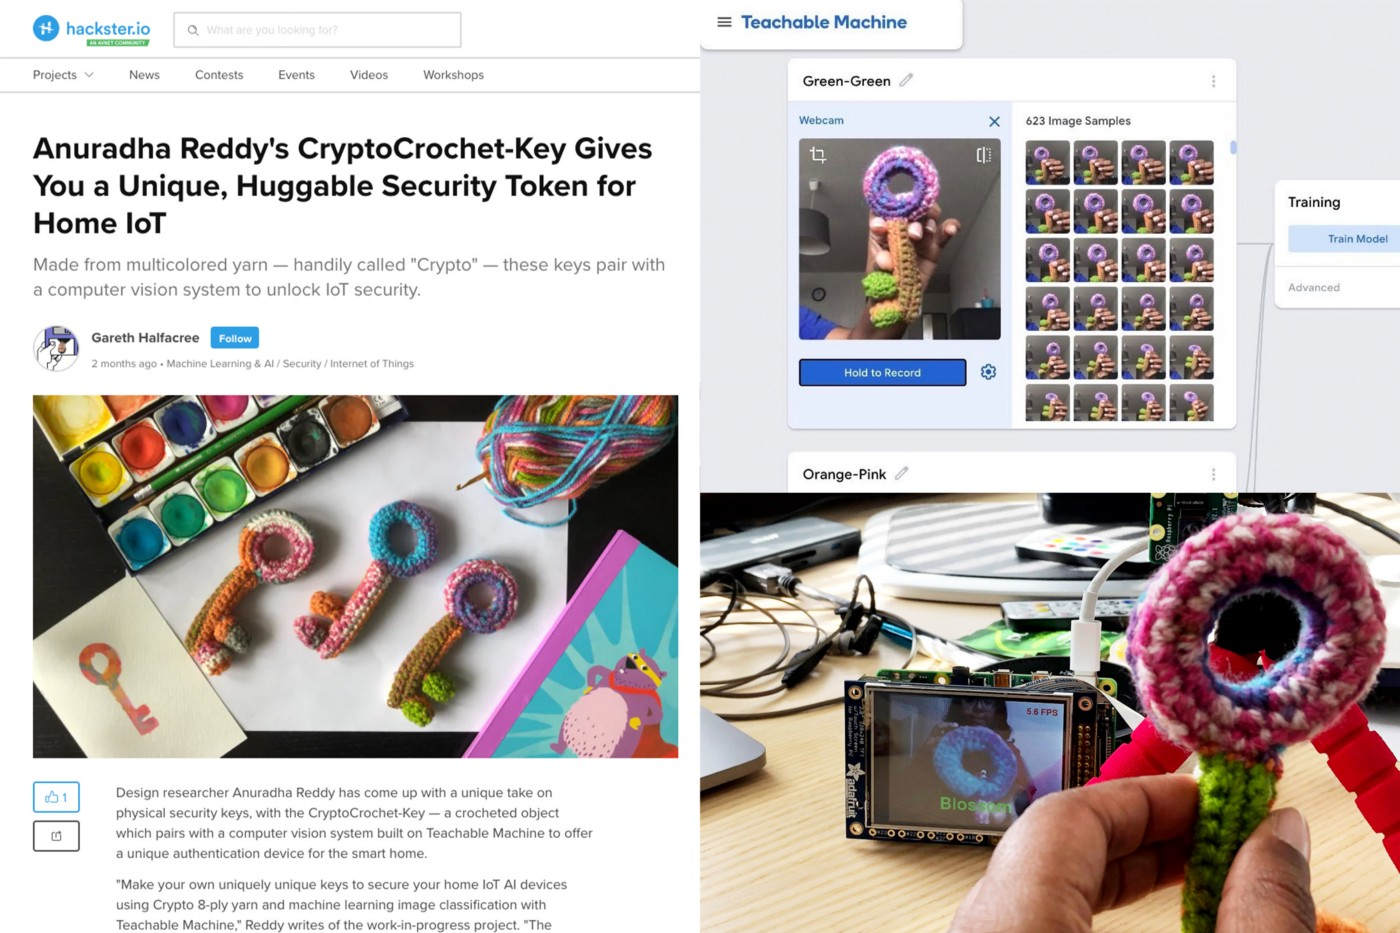 """The first image shows a hacker news website featuring my CryptoCrochet-Key project. The article states """"Anuradha Reddy's CryptoCrochet-Key Gives You a Unique, Huggable Security Token for Home IoT."""" The second image on the top right is the software application called 'Teachable Machine' where I'm training the Machine to learn how my crochet key looks using my computer webcam. The third image on the bottom right is a picture of my hand with the key testing on a Raspberry Pi computer."""